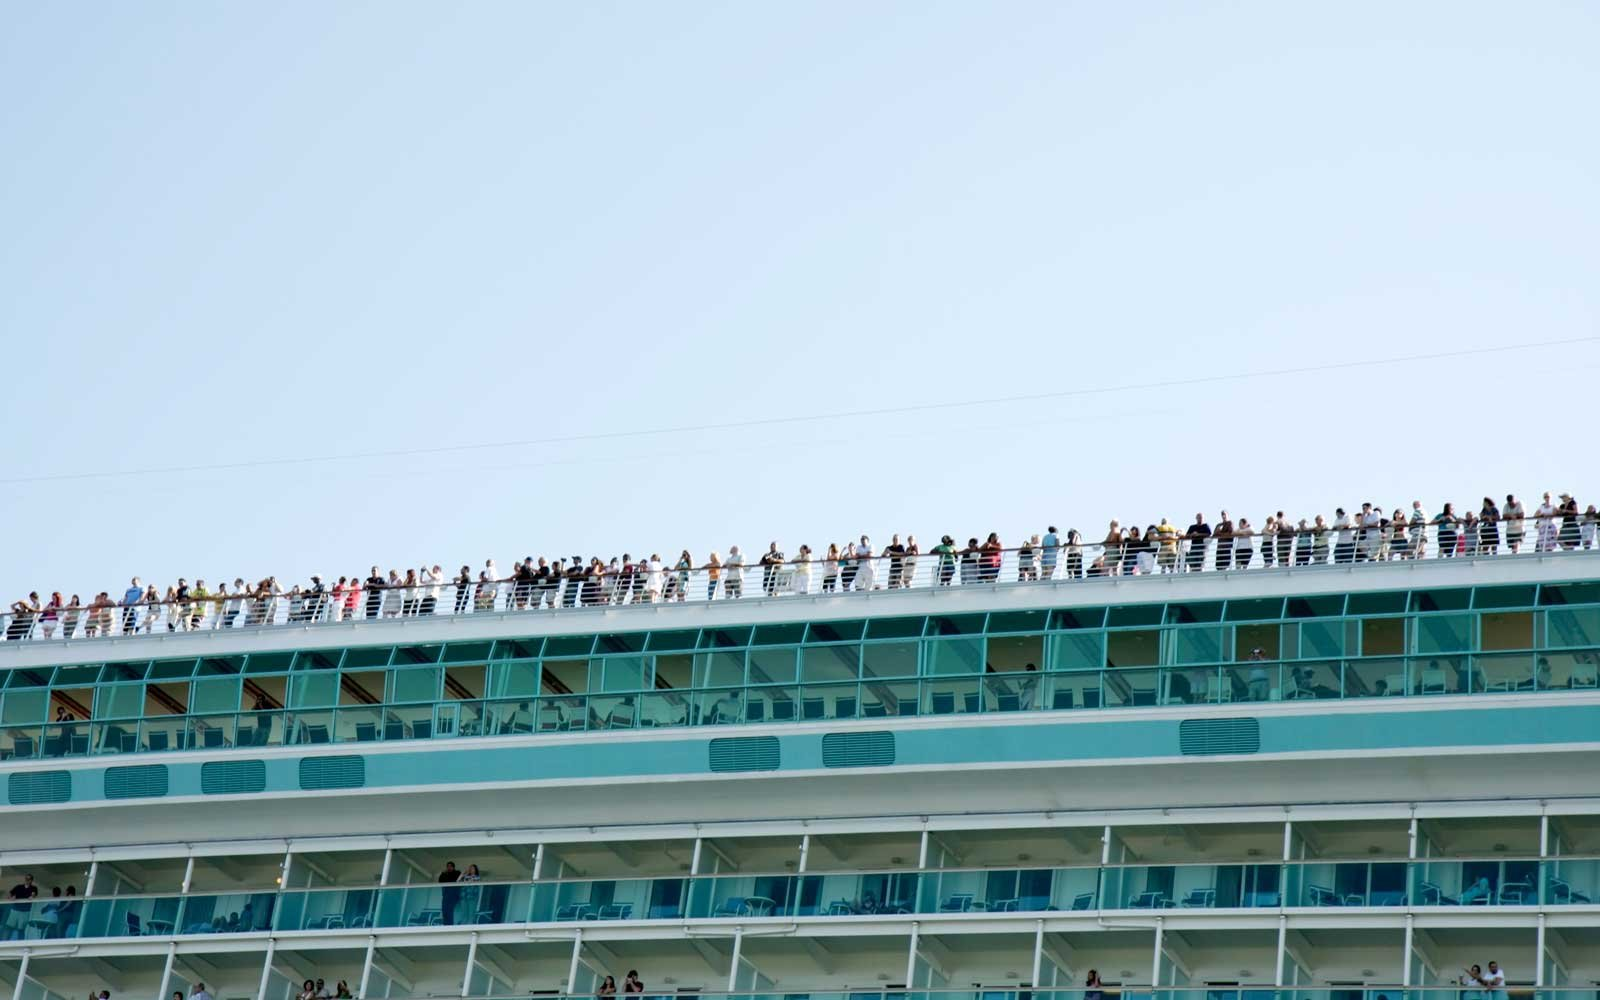 Passengers on a Cruise Ship Upper Deck